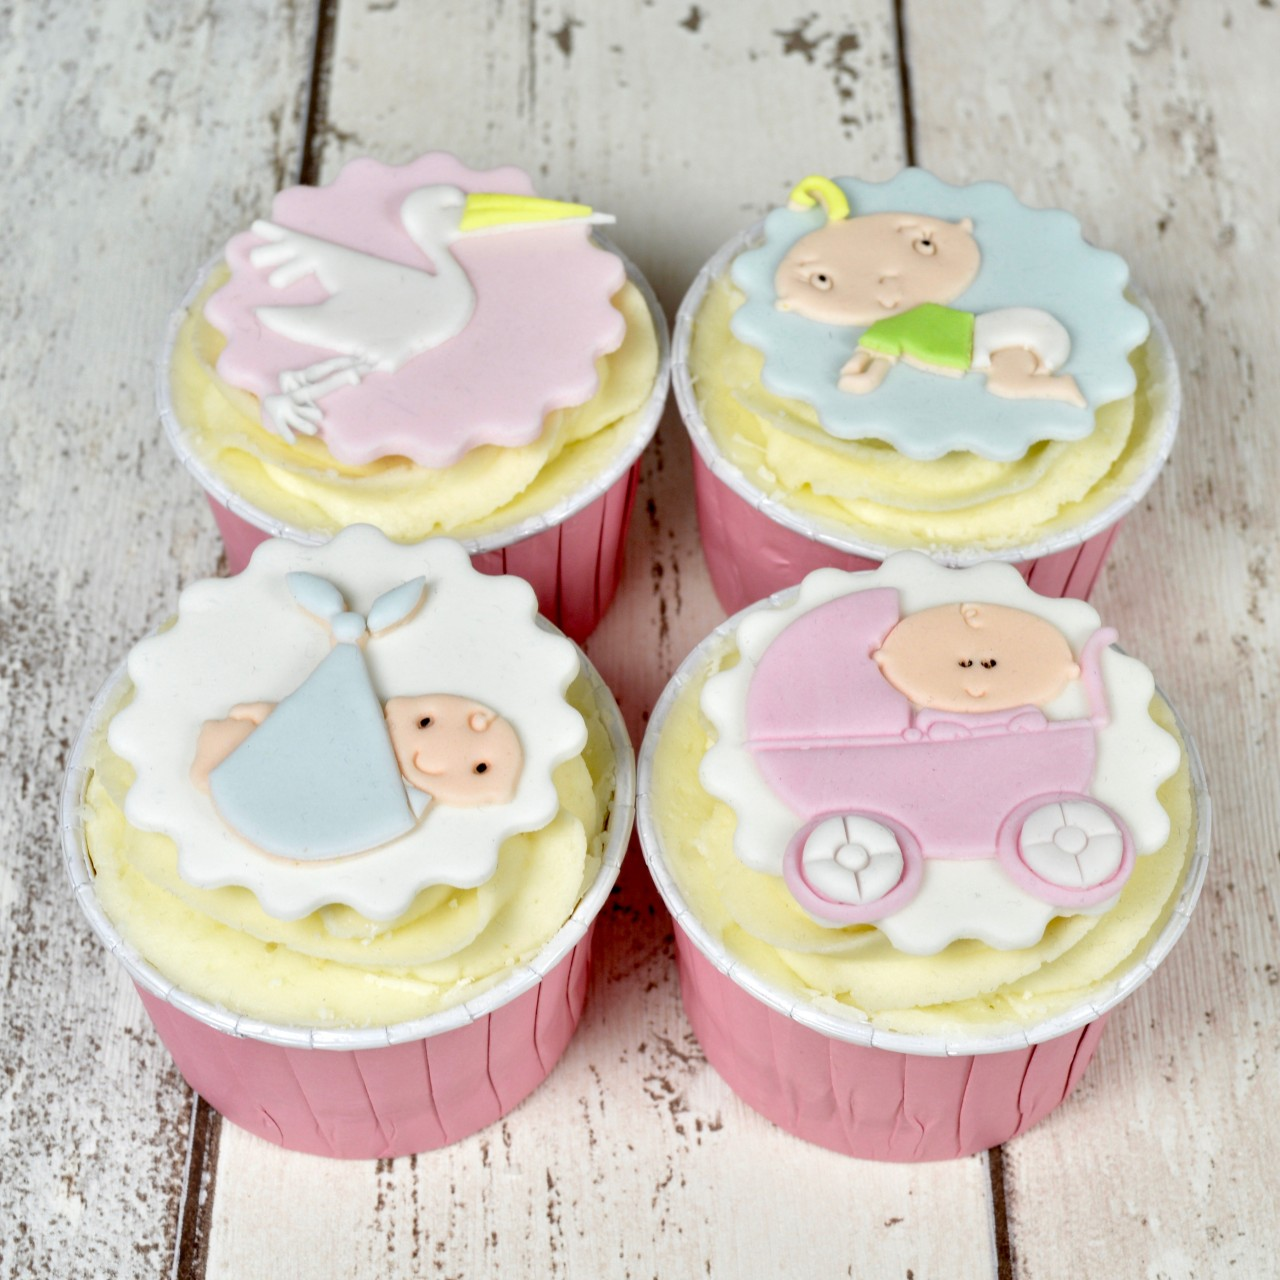 FMM Cutest & Most Adorable Baby Cutter Set